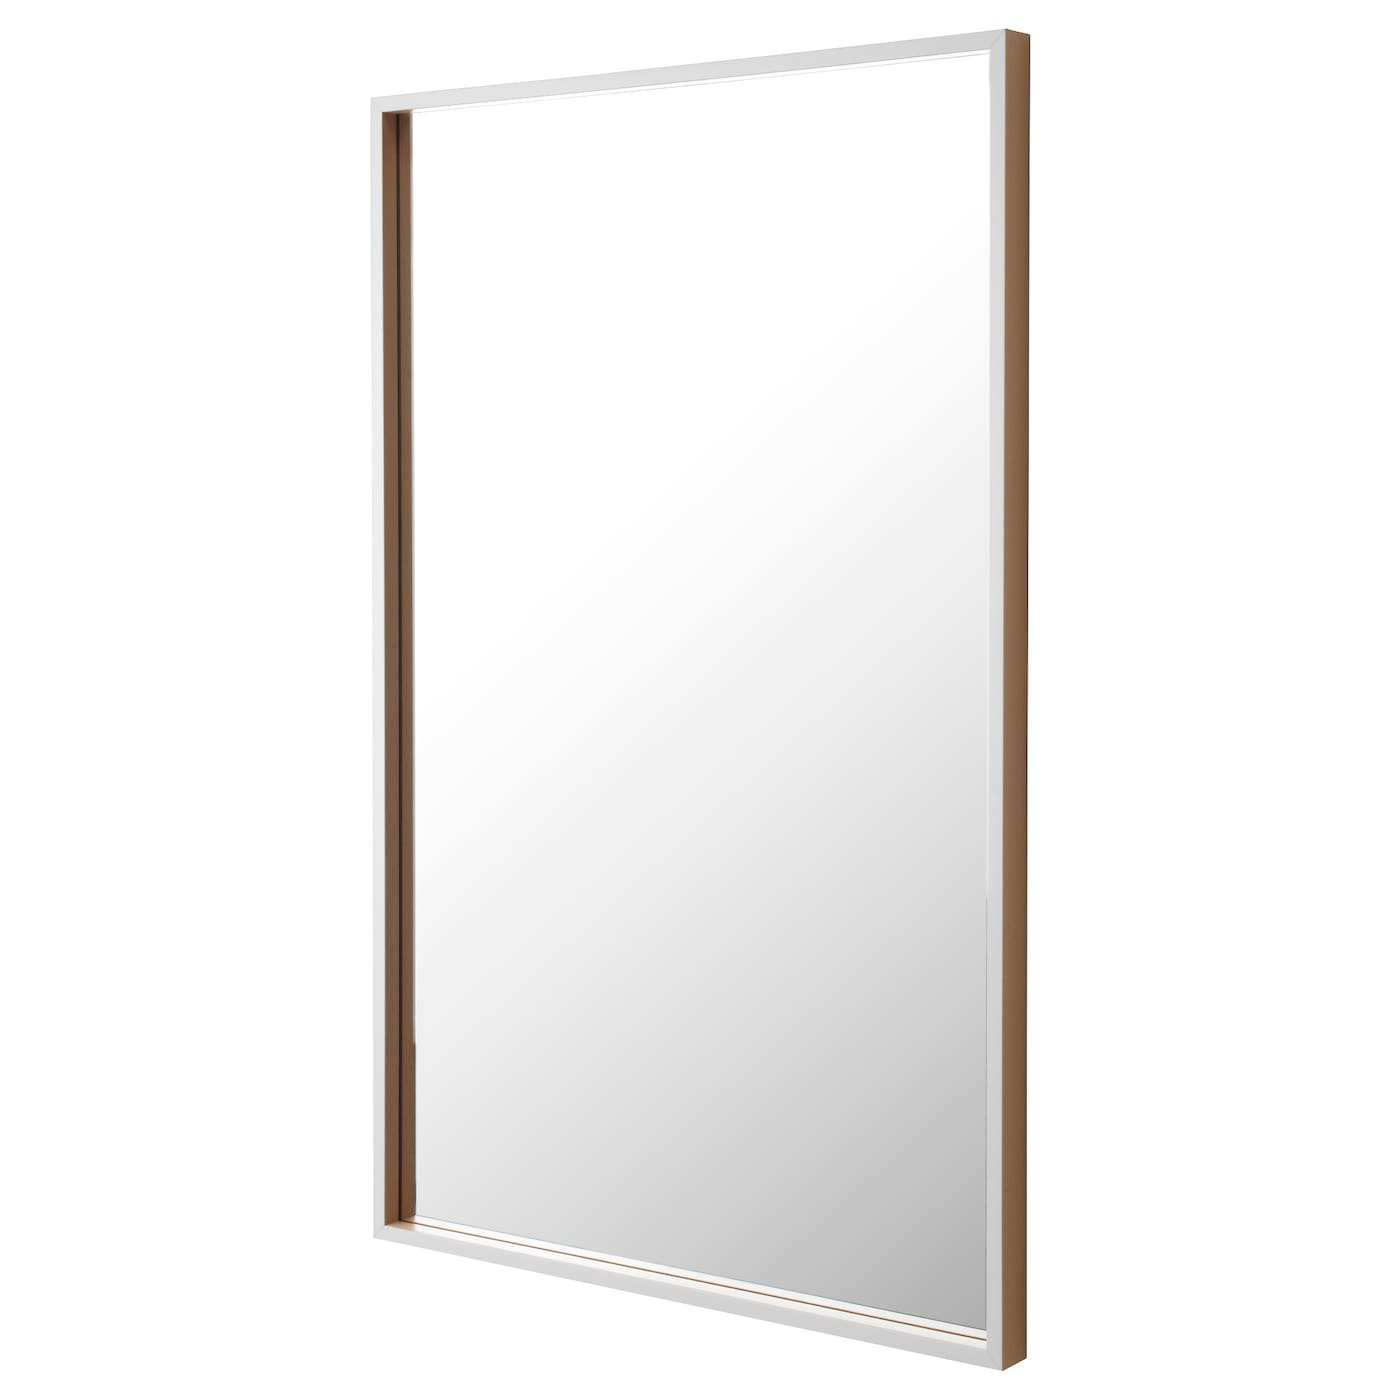 Wall mirrors wall mirrors with shelves ikea for Miroir 50 x 90